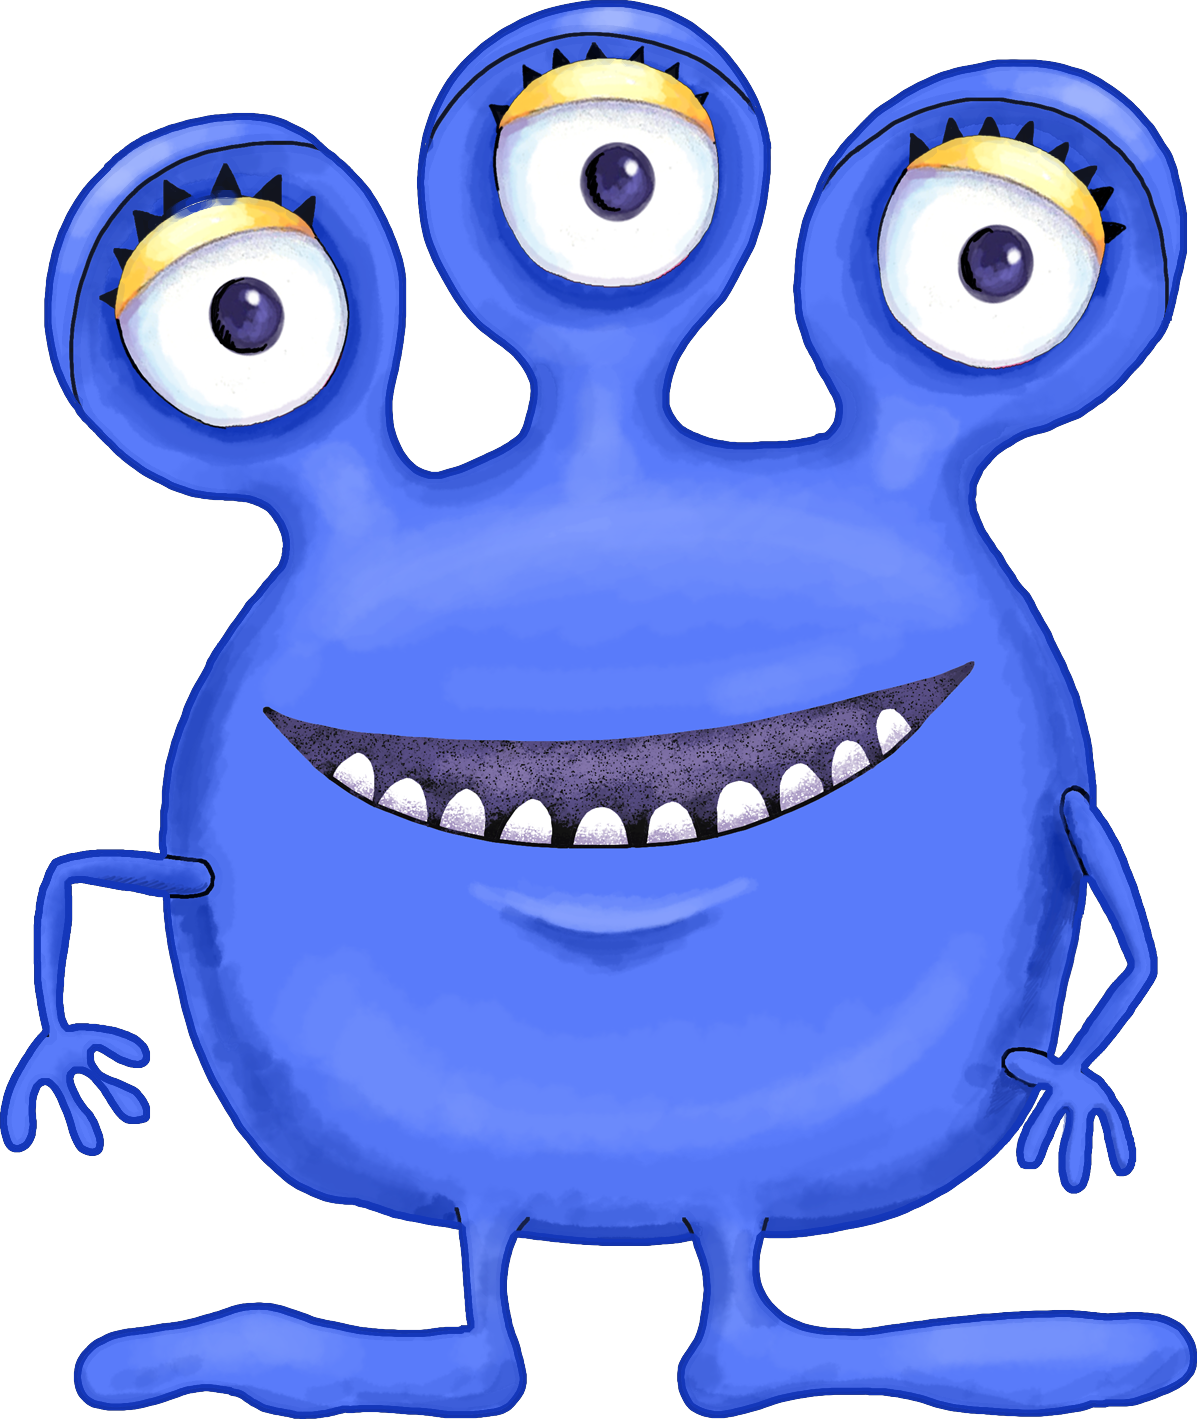 png royalty free library Blue clipart monsters. Monstruito de tres ojos.